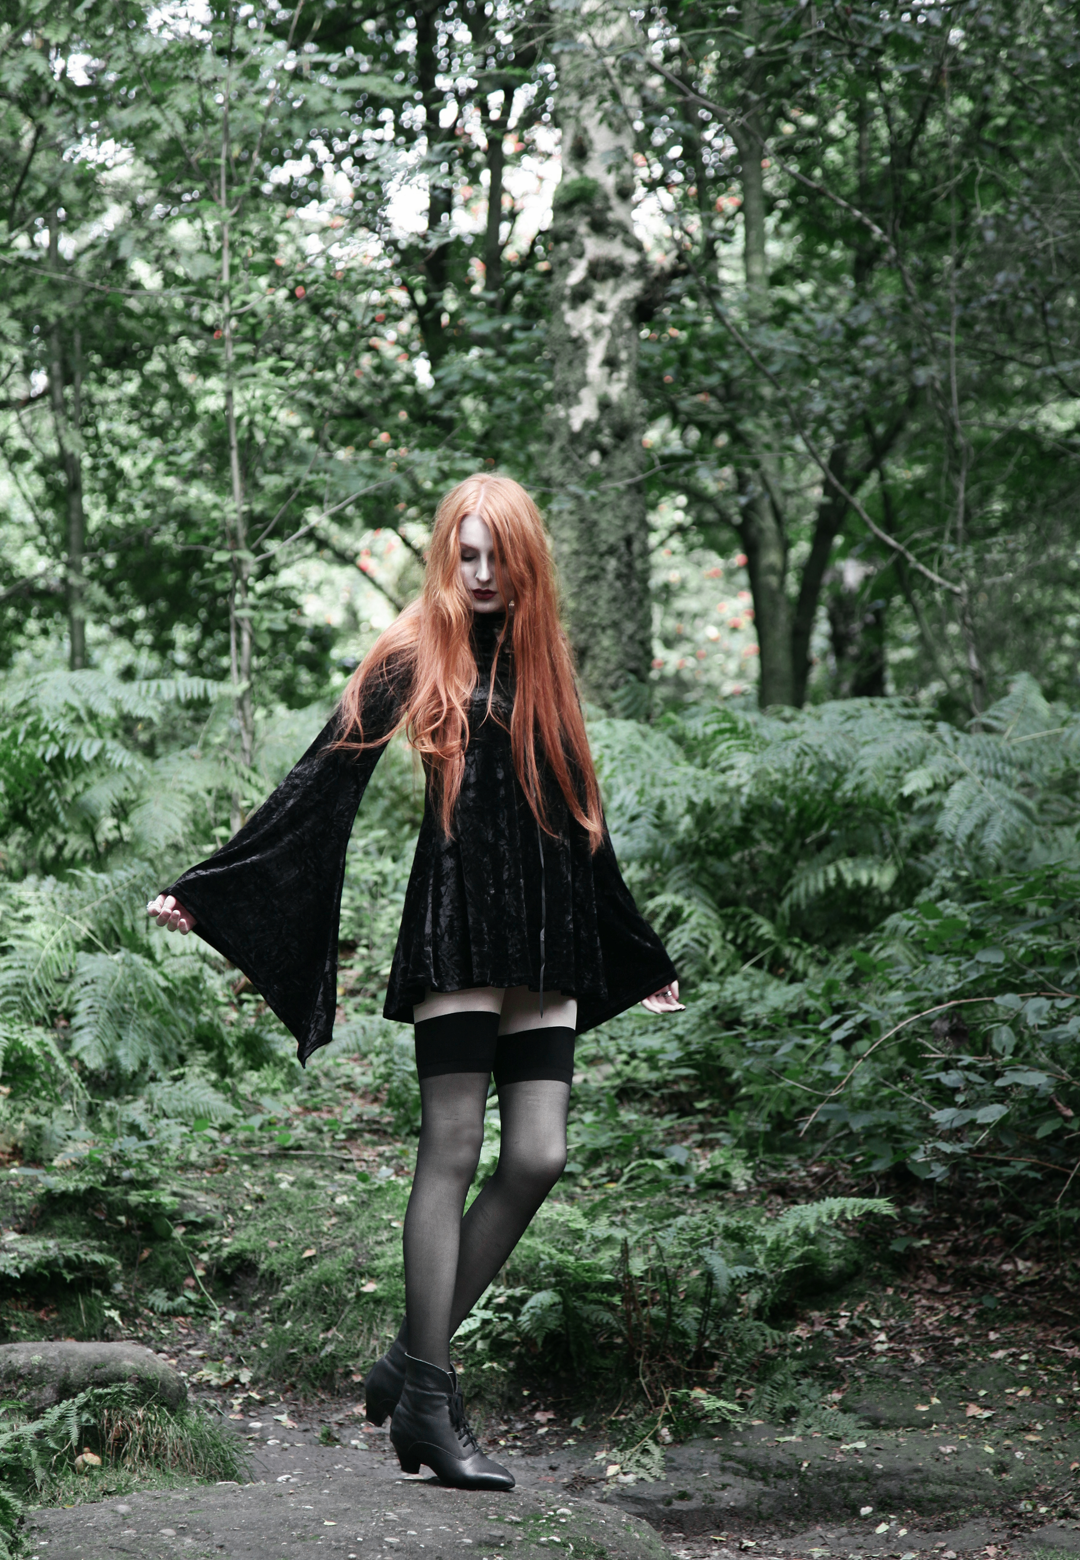 Olivia Emily wears Kilstar Velvet Witch Hood Dress, Over Knee Stockings and Vintage Pointed Boots